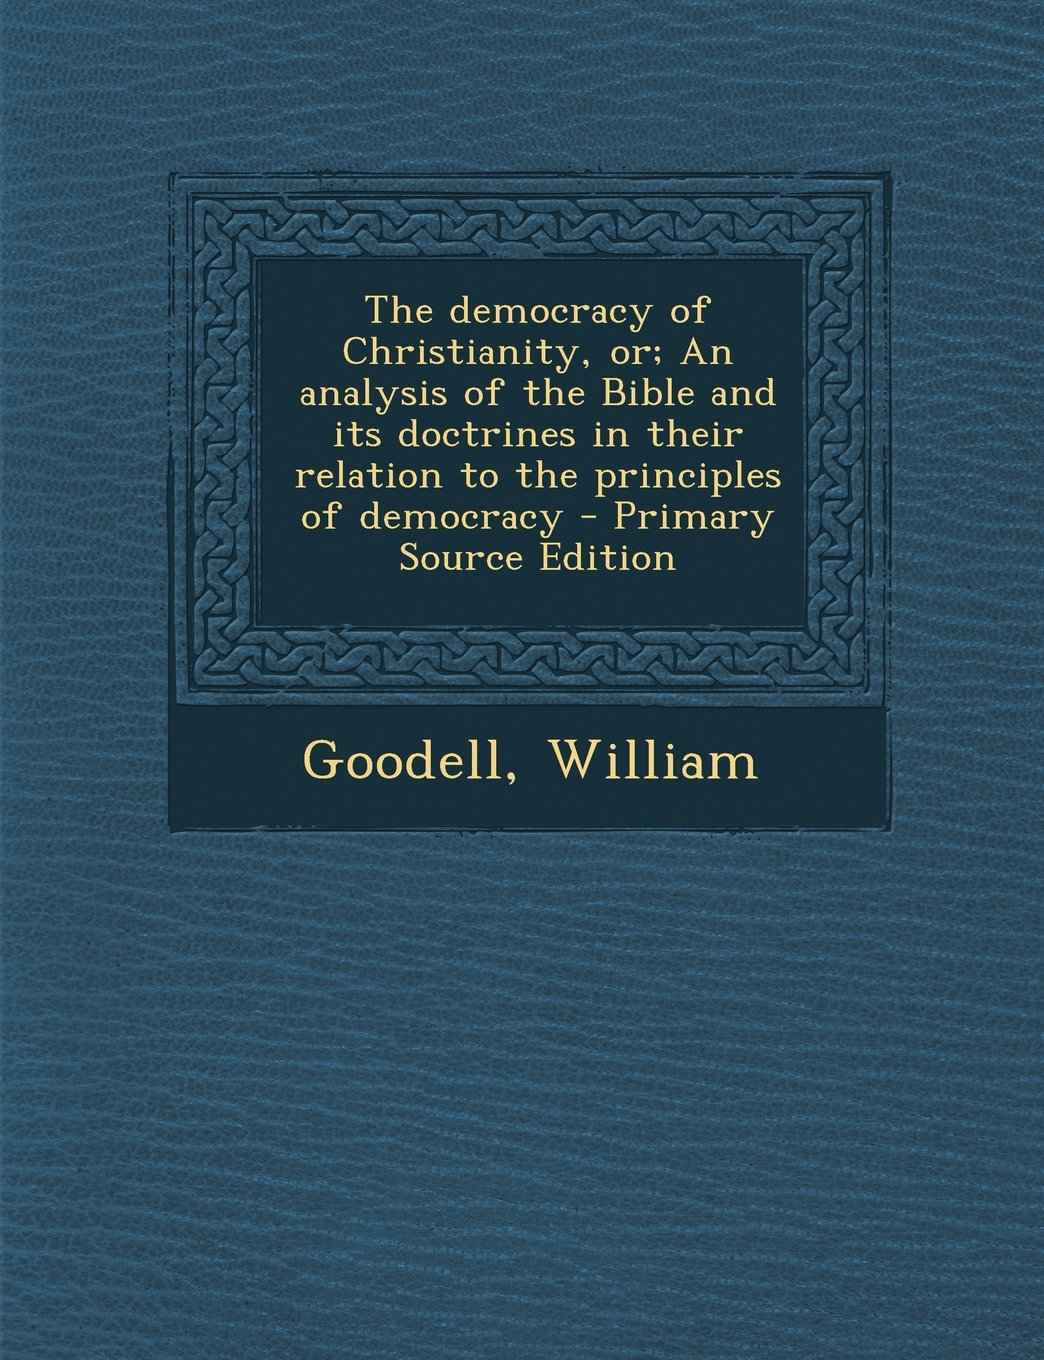 The Democracy of Christianity, Or; An Analysis of the Bible and Its Doctrines in Their Relation to the Principles of Democracy - Primary Source Editio PDF